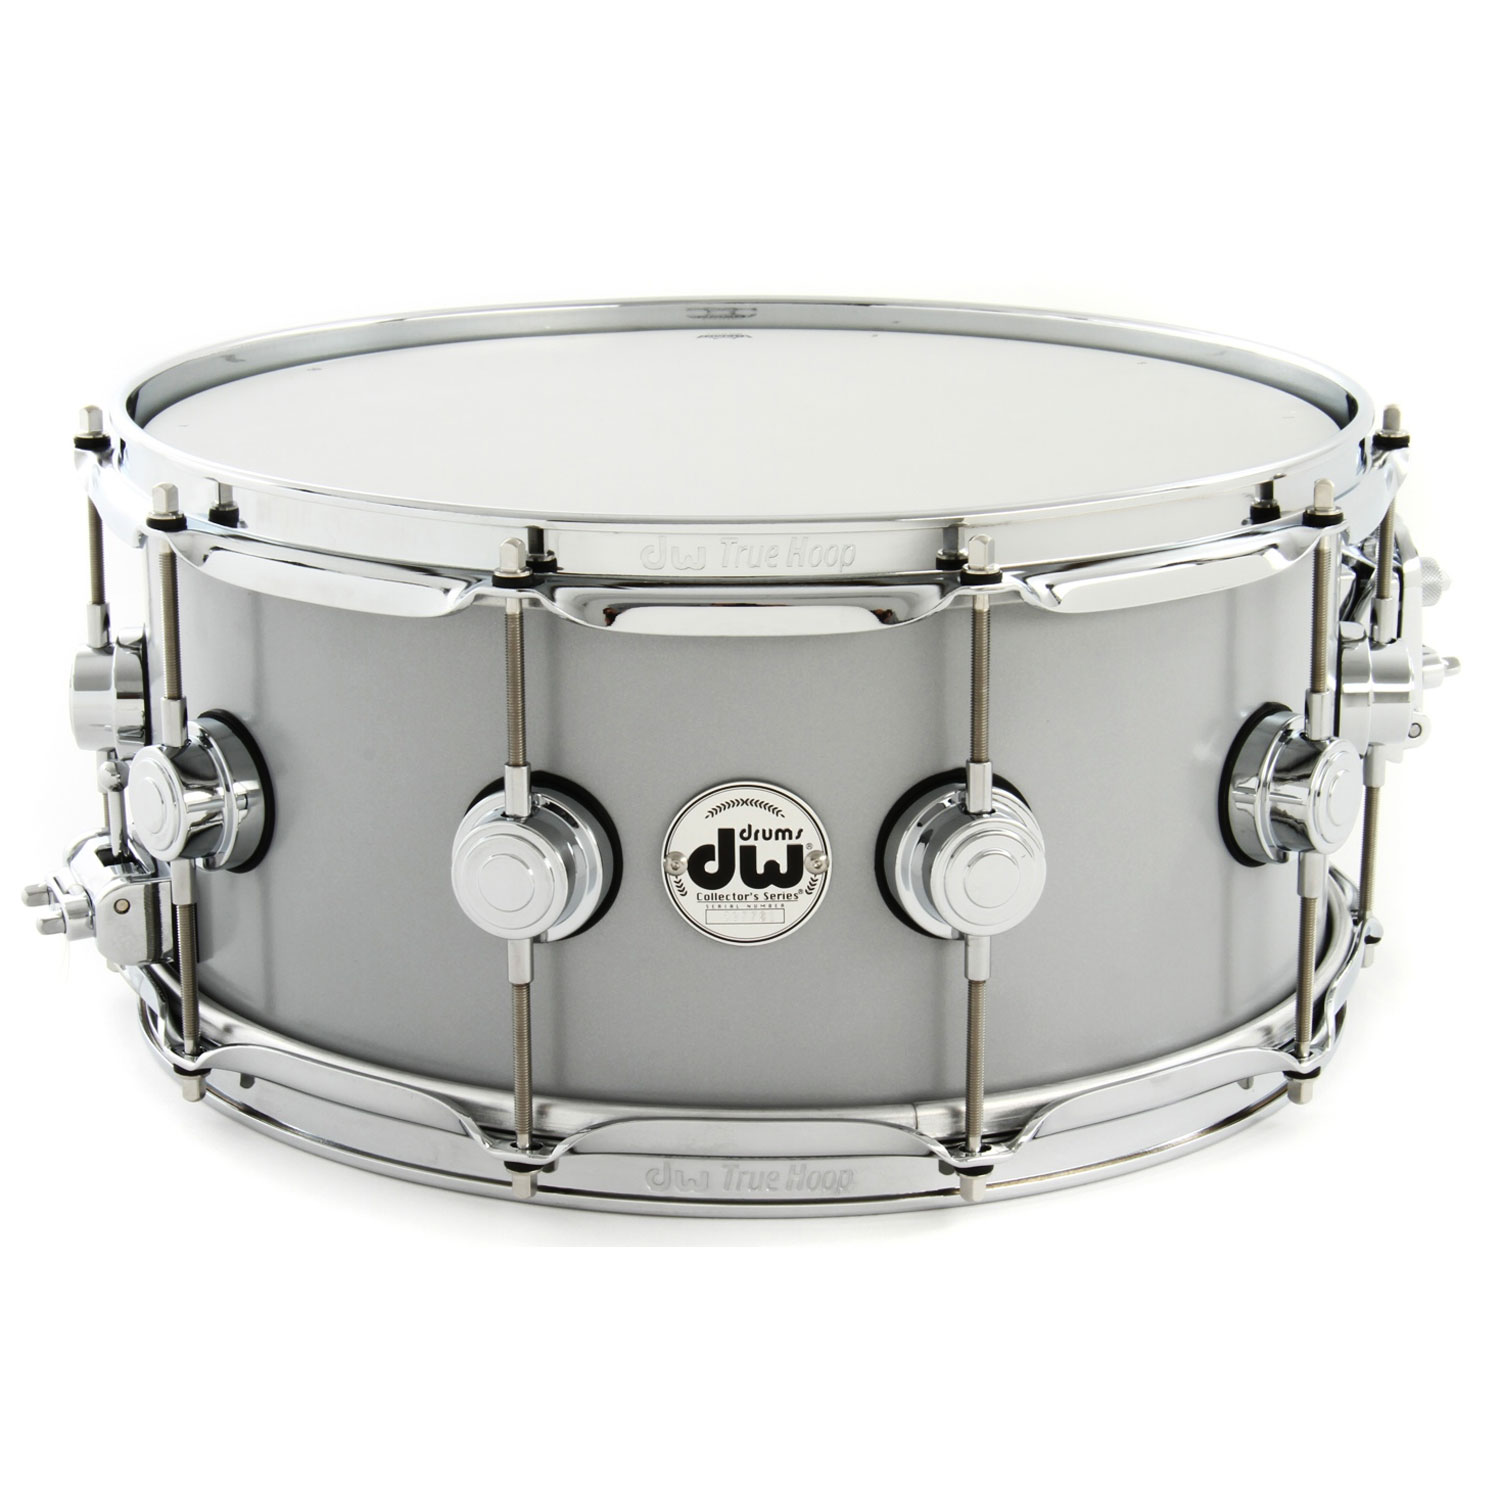 "DW 6.5"" x 14"" Collector"